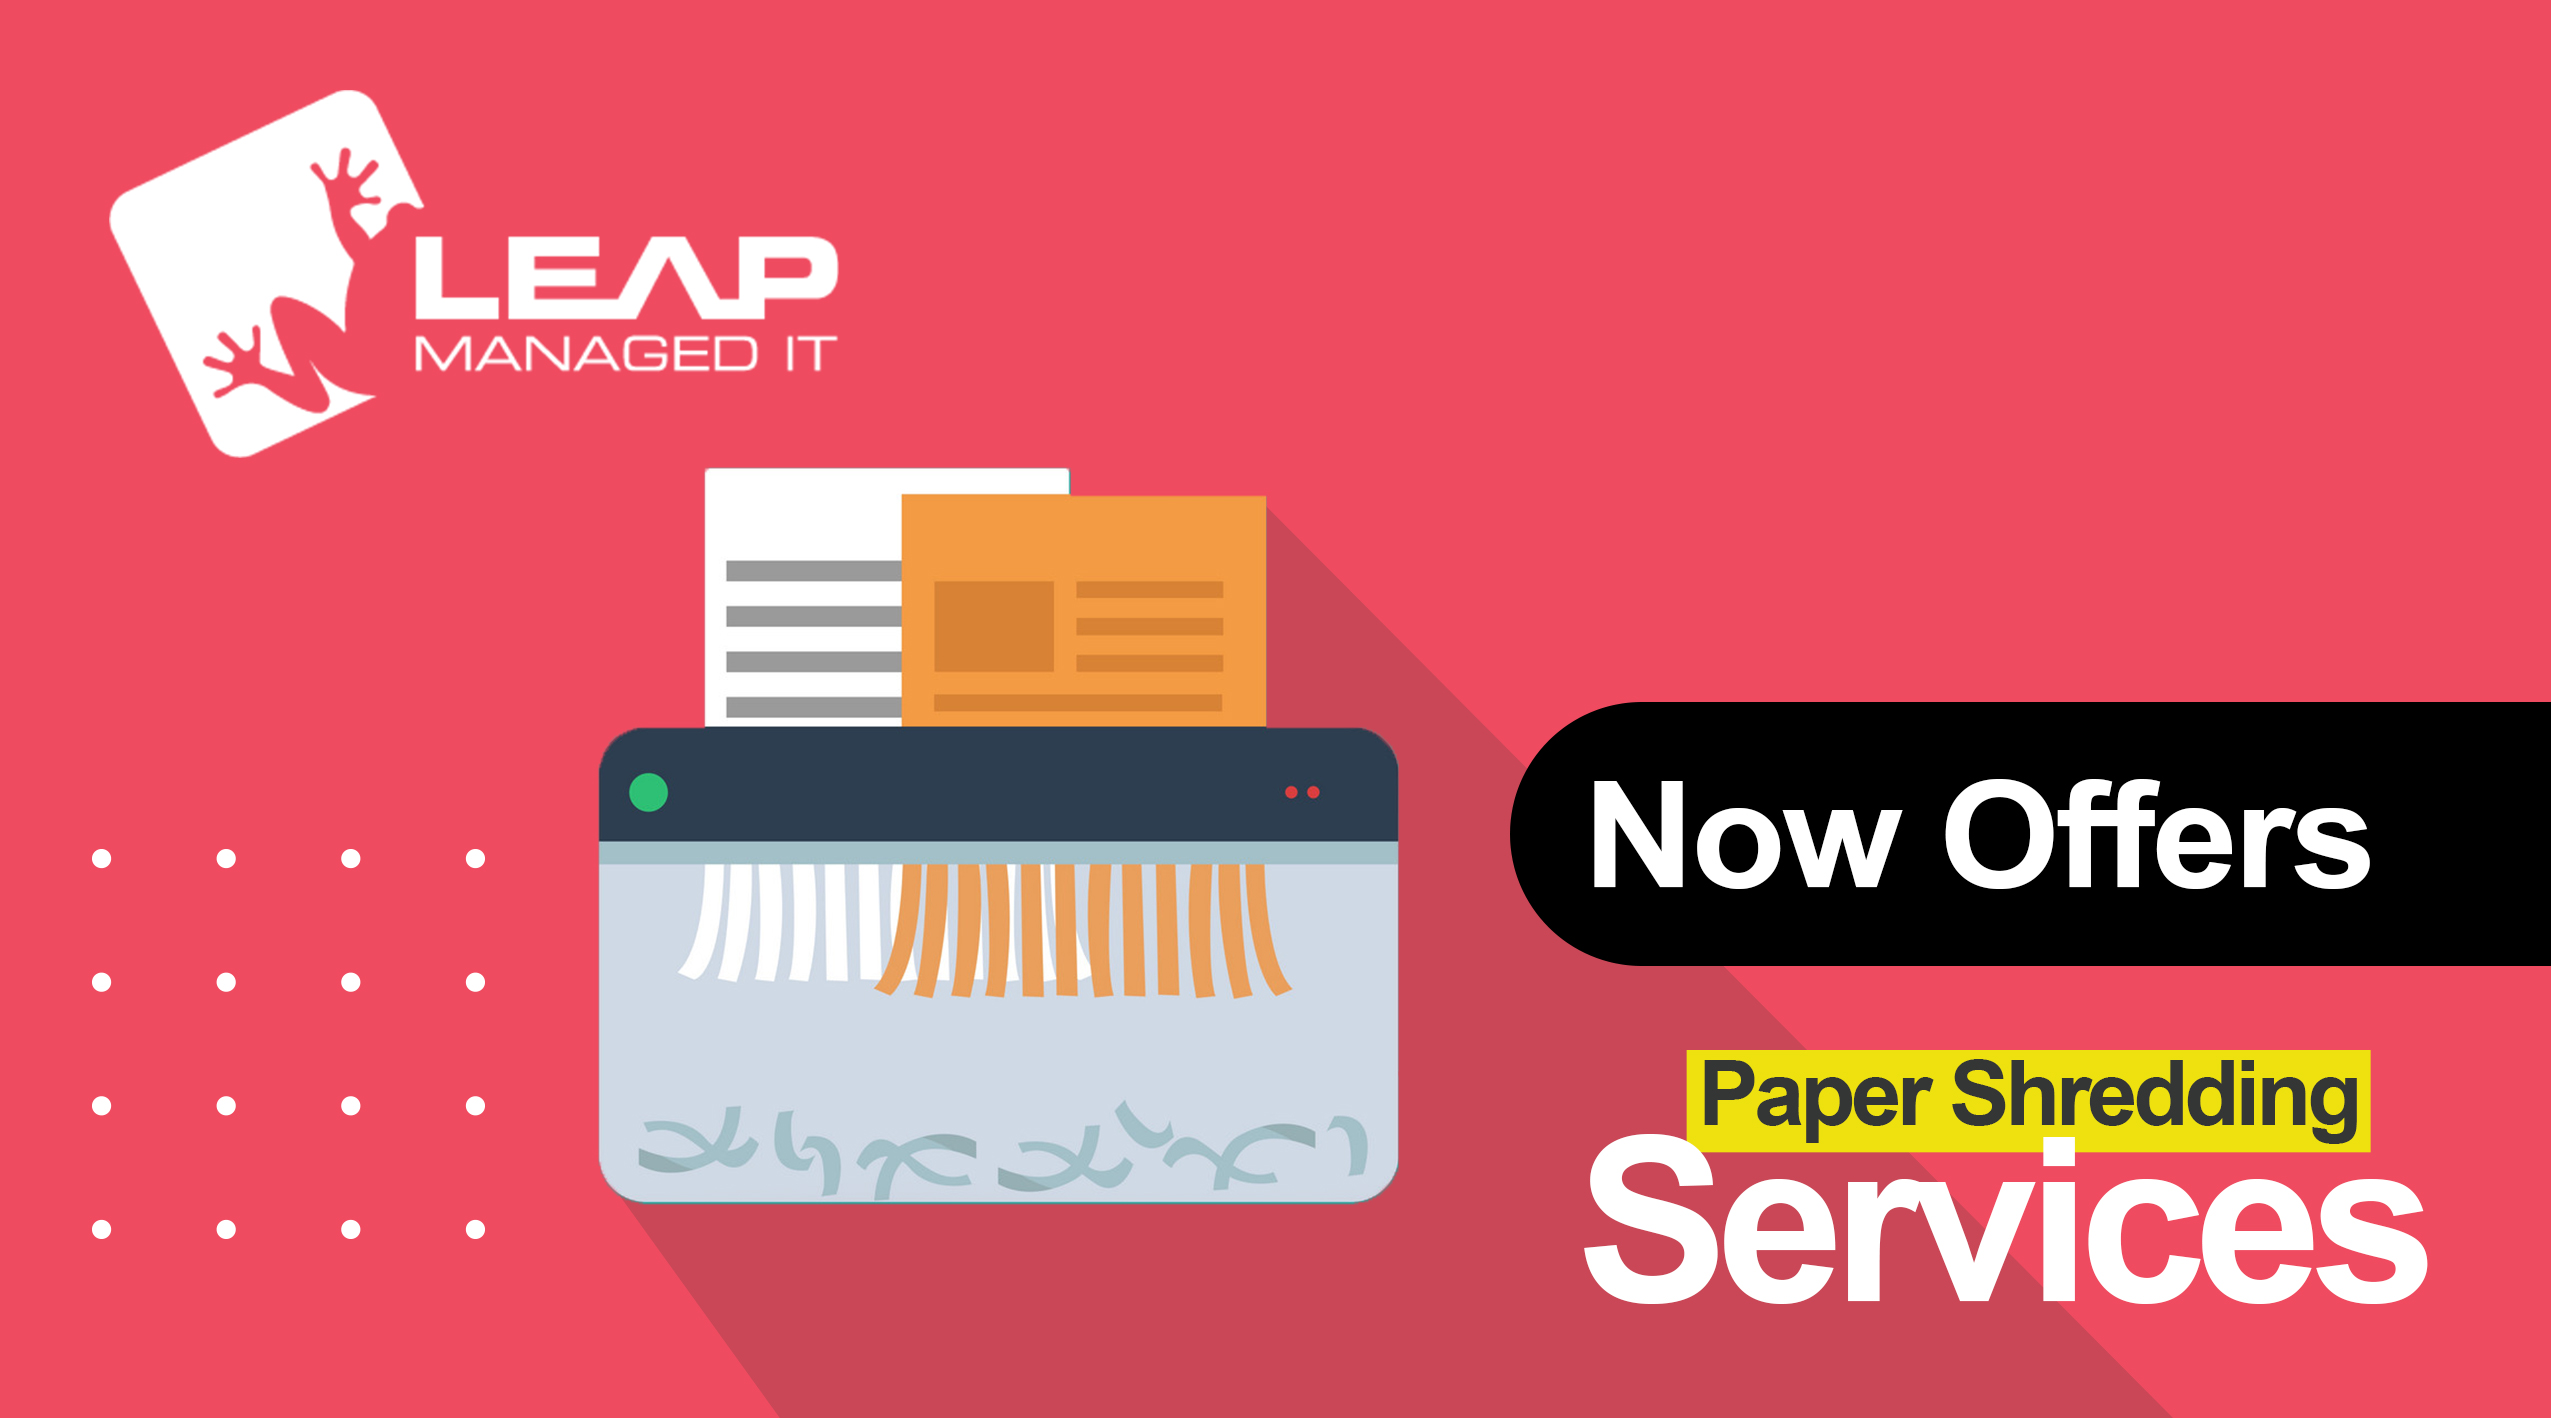 Leap Now Offers Paper Shredding Services